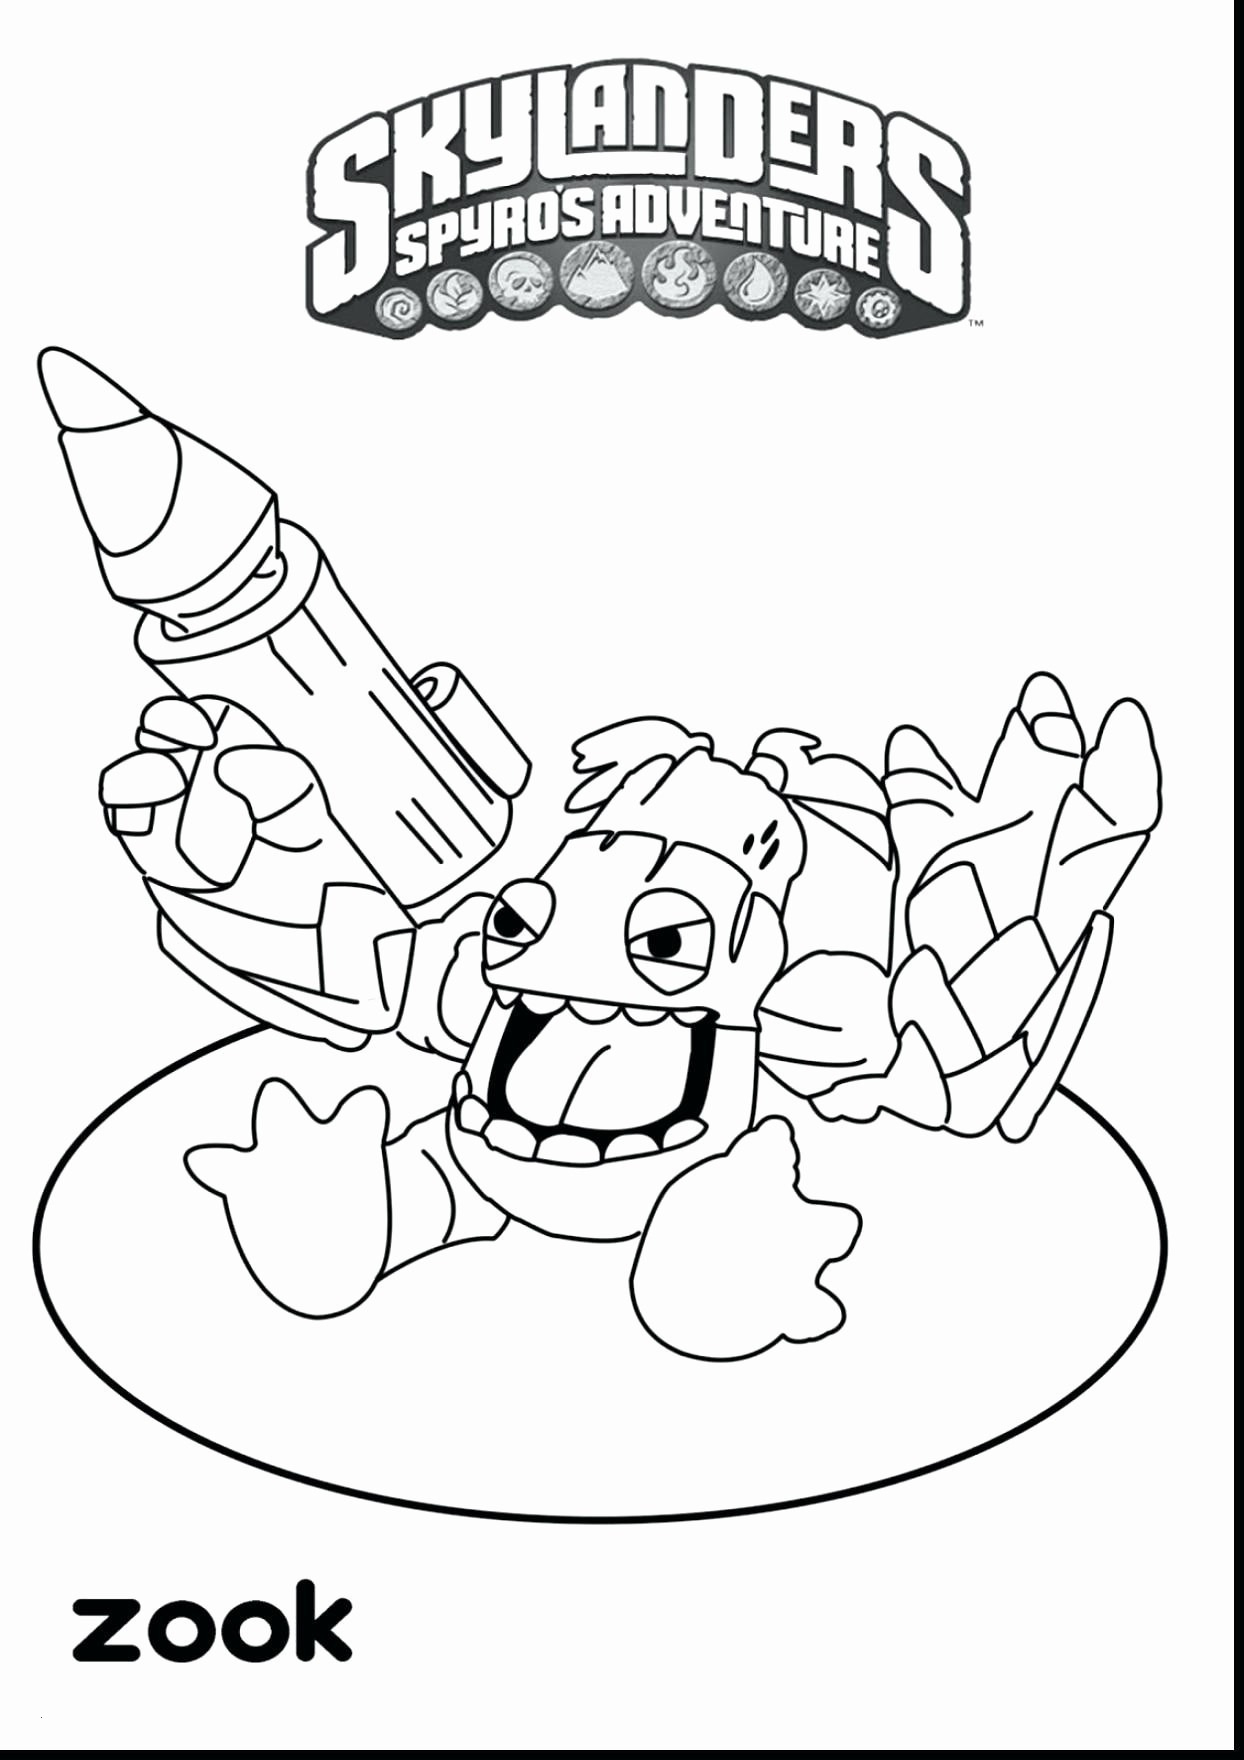 Free Emoji Coloring Pages  to Print 3m - Free For kids